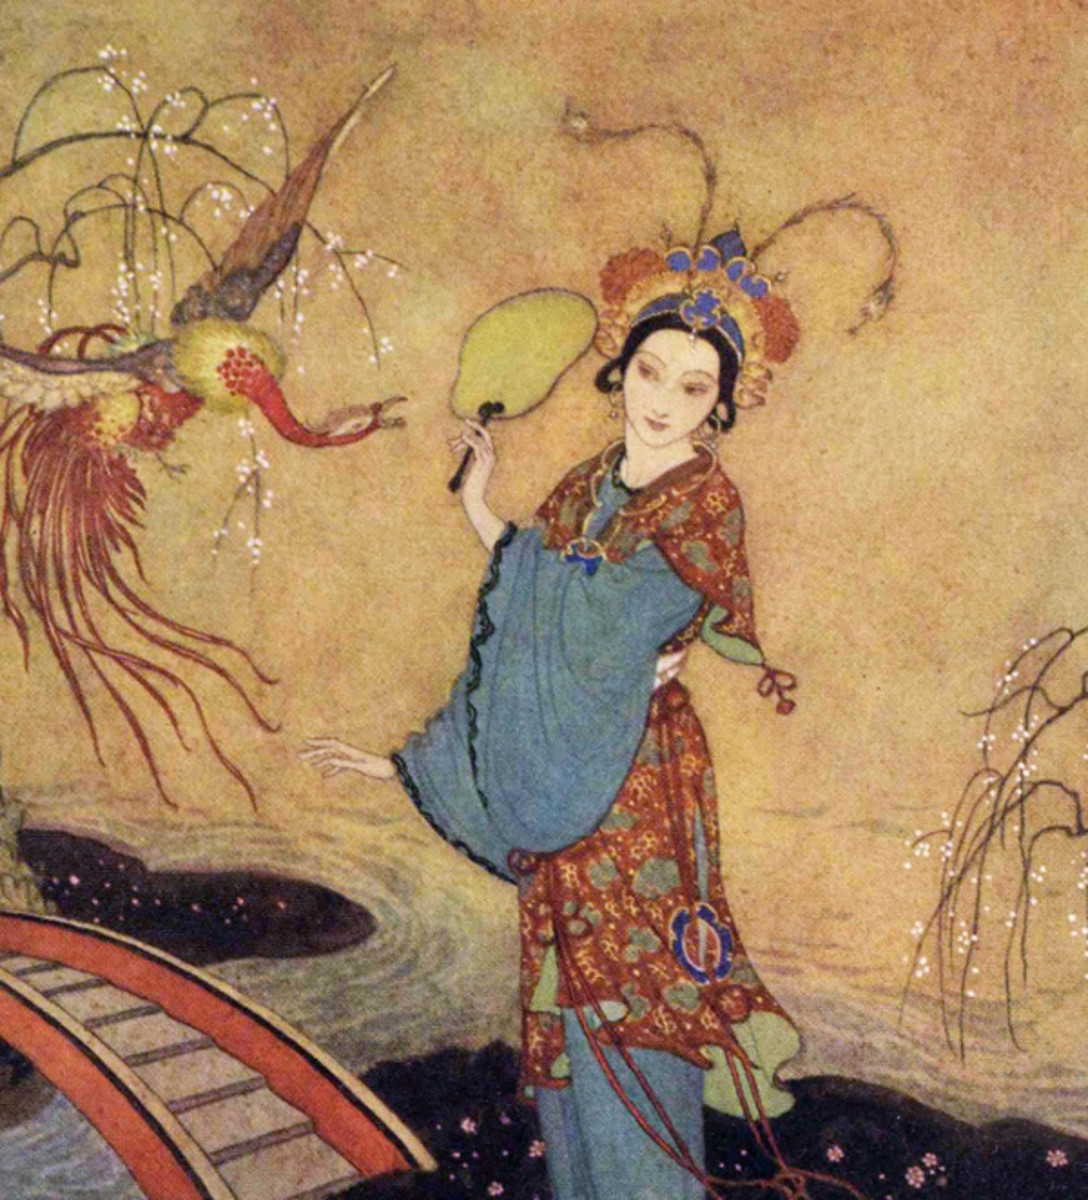 "Here we show a portion of 'Princess Badoura' - it is from the suite by Edmund Dulac published in ""Princess Badoura"" (1913)."